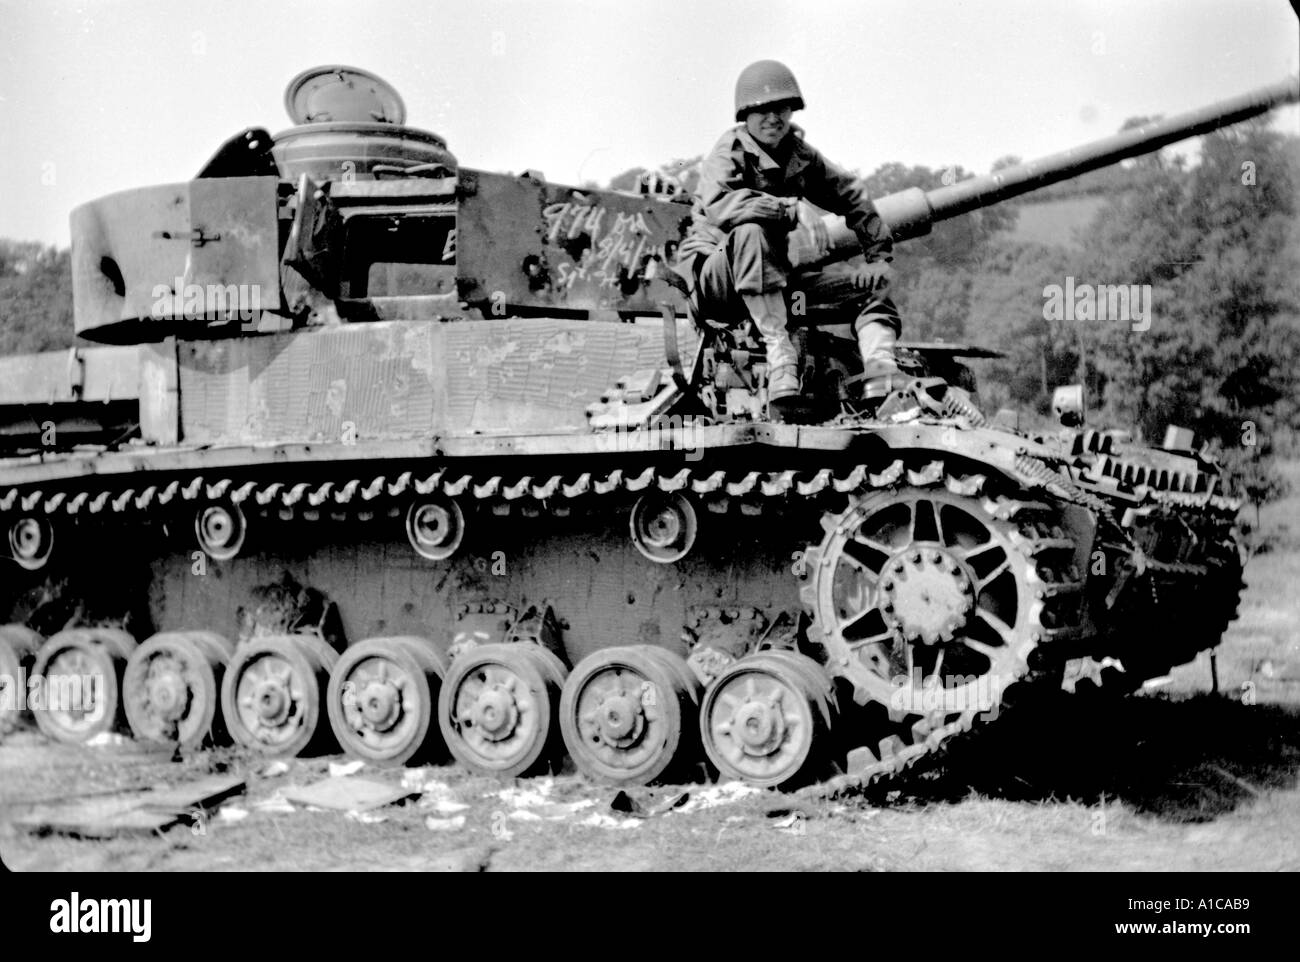 WW II German Mark IV tank with G I Captain Normandy campaign - Stock Image